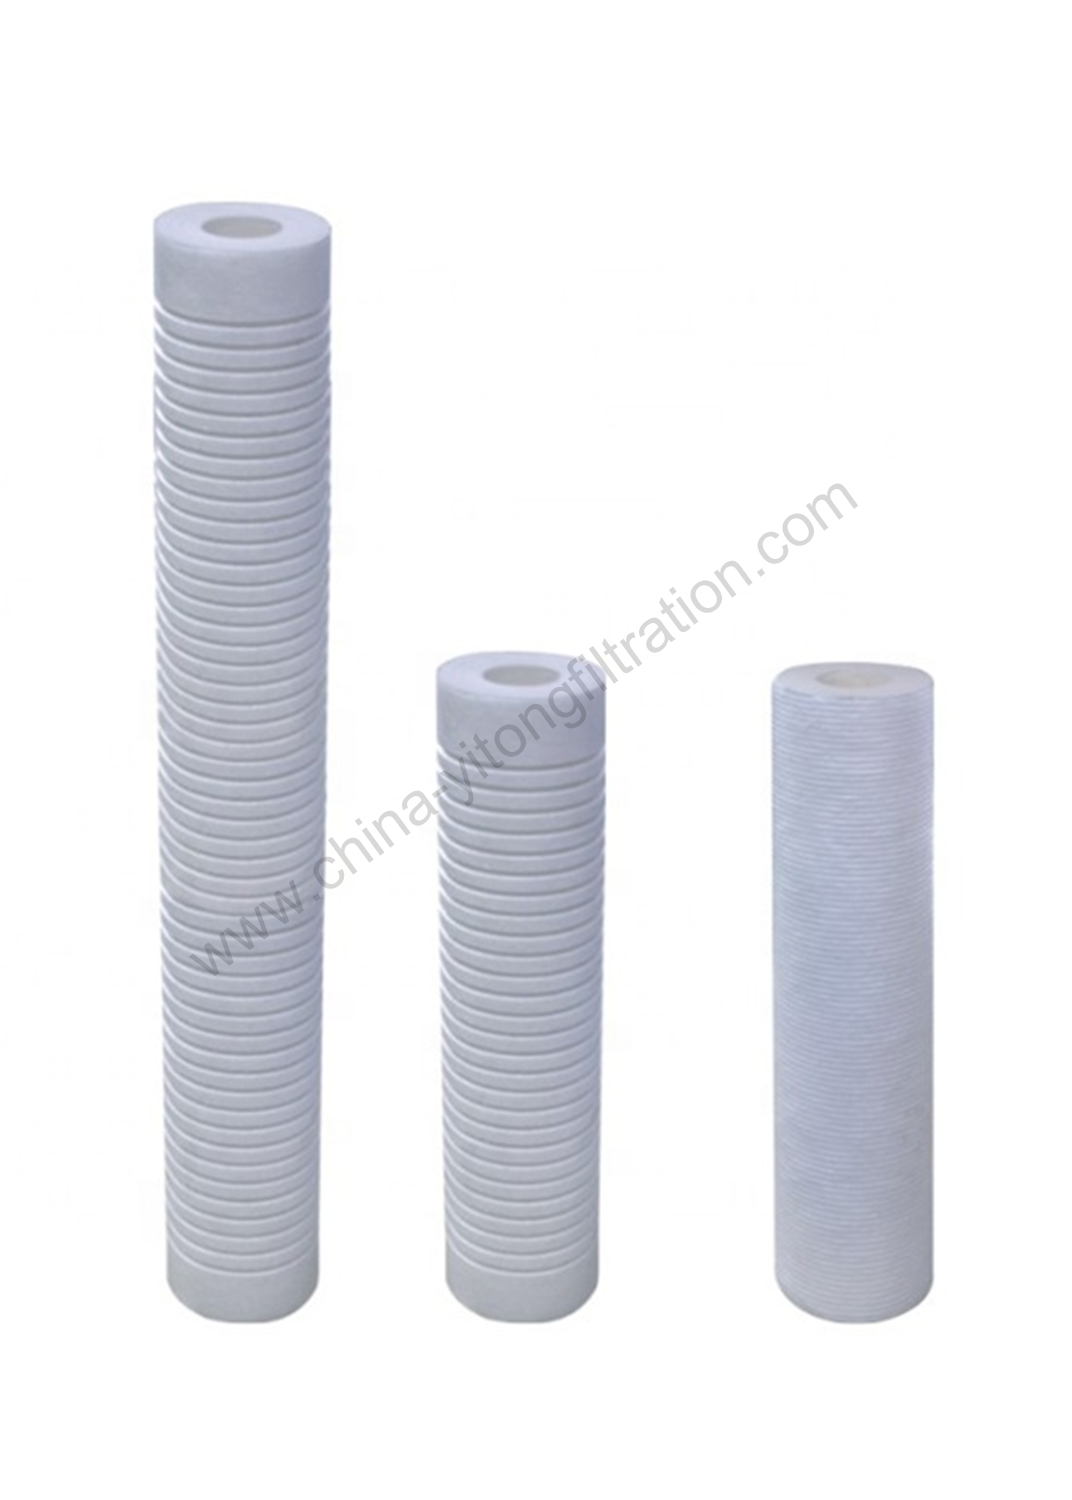 Melt Blown Filter Cartridge